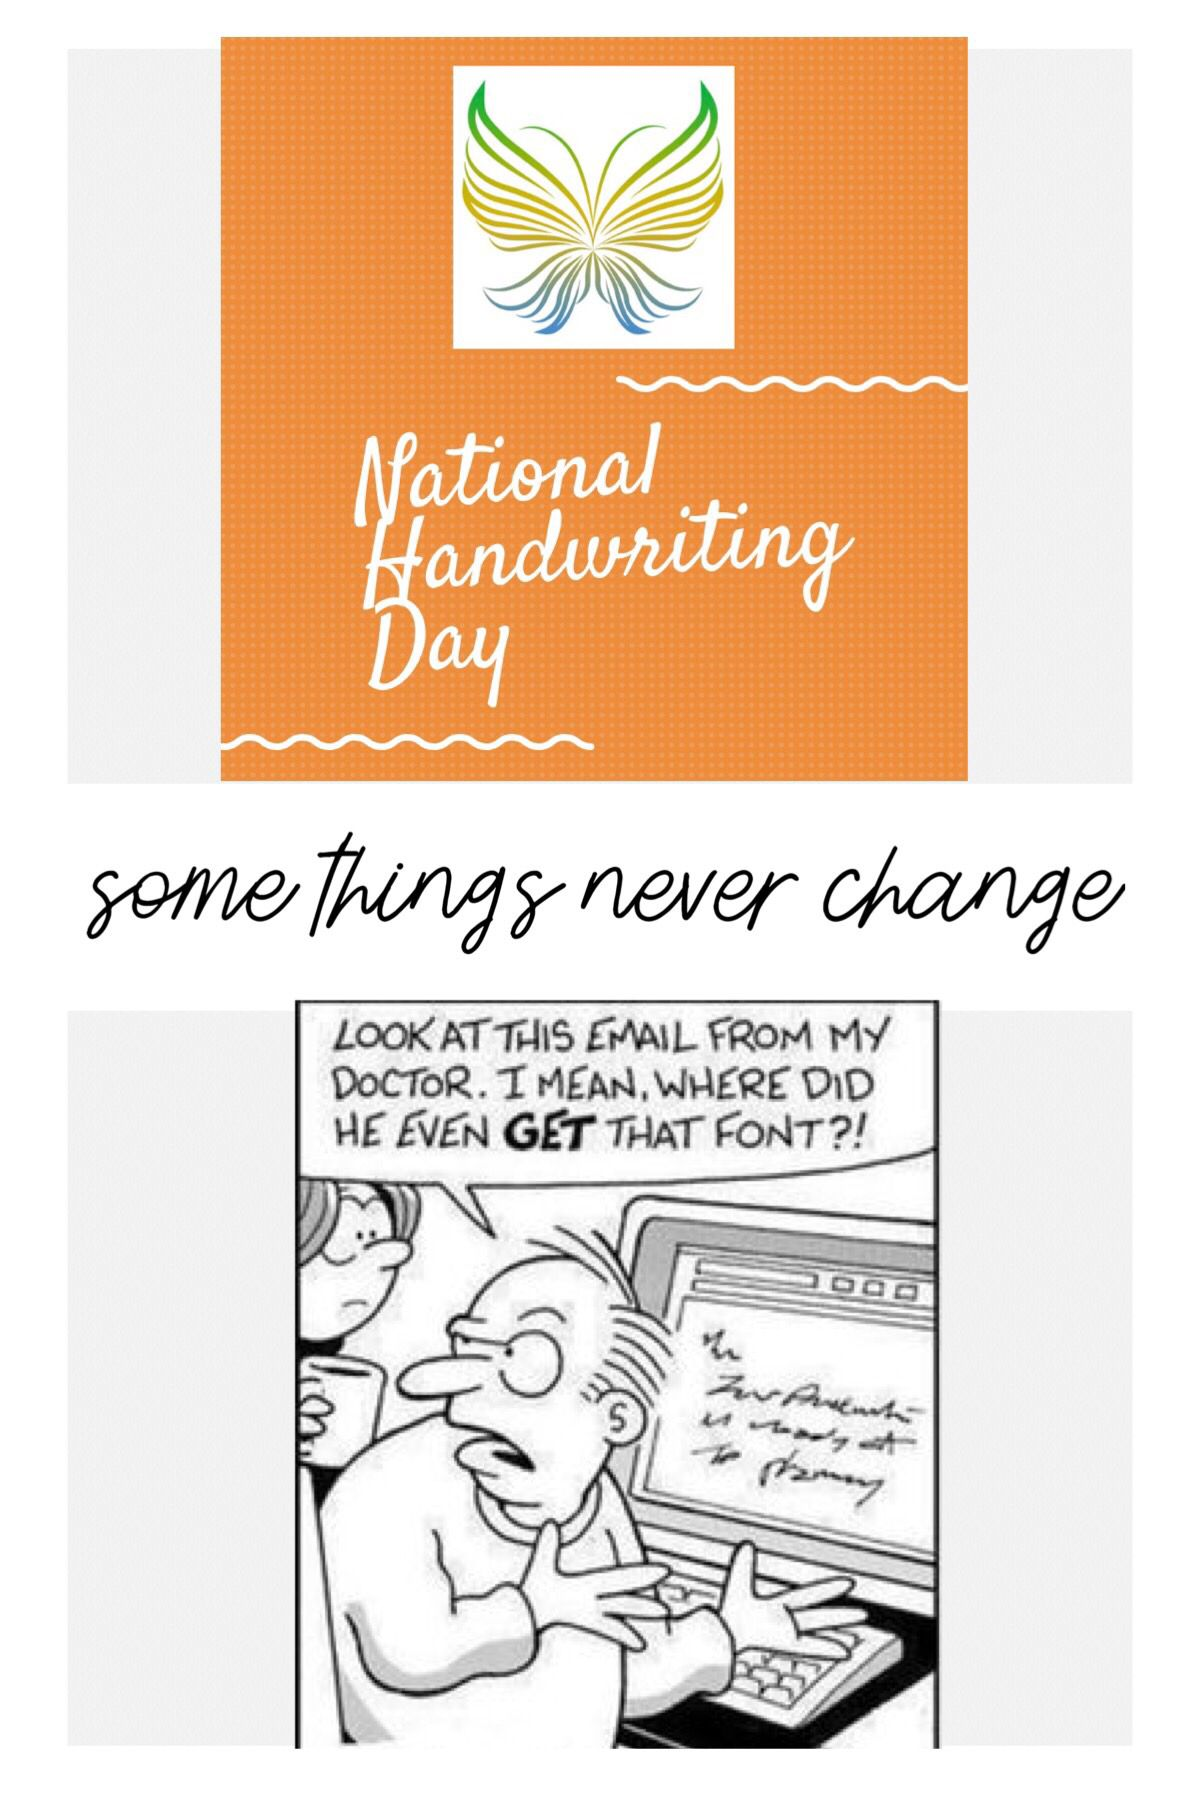 National Handwriting Day! Doctors may have a reputation of